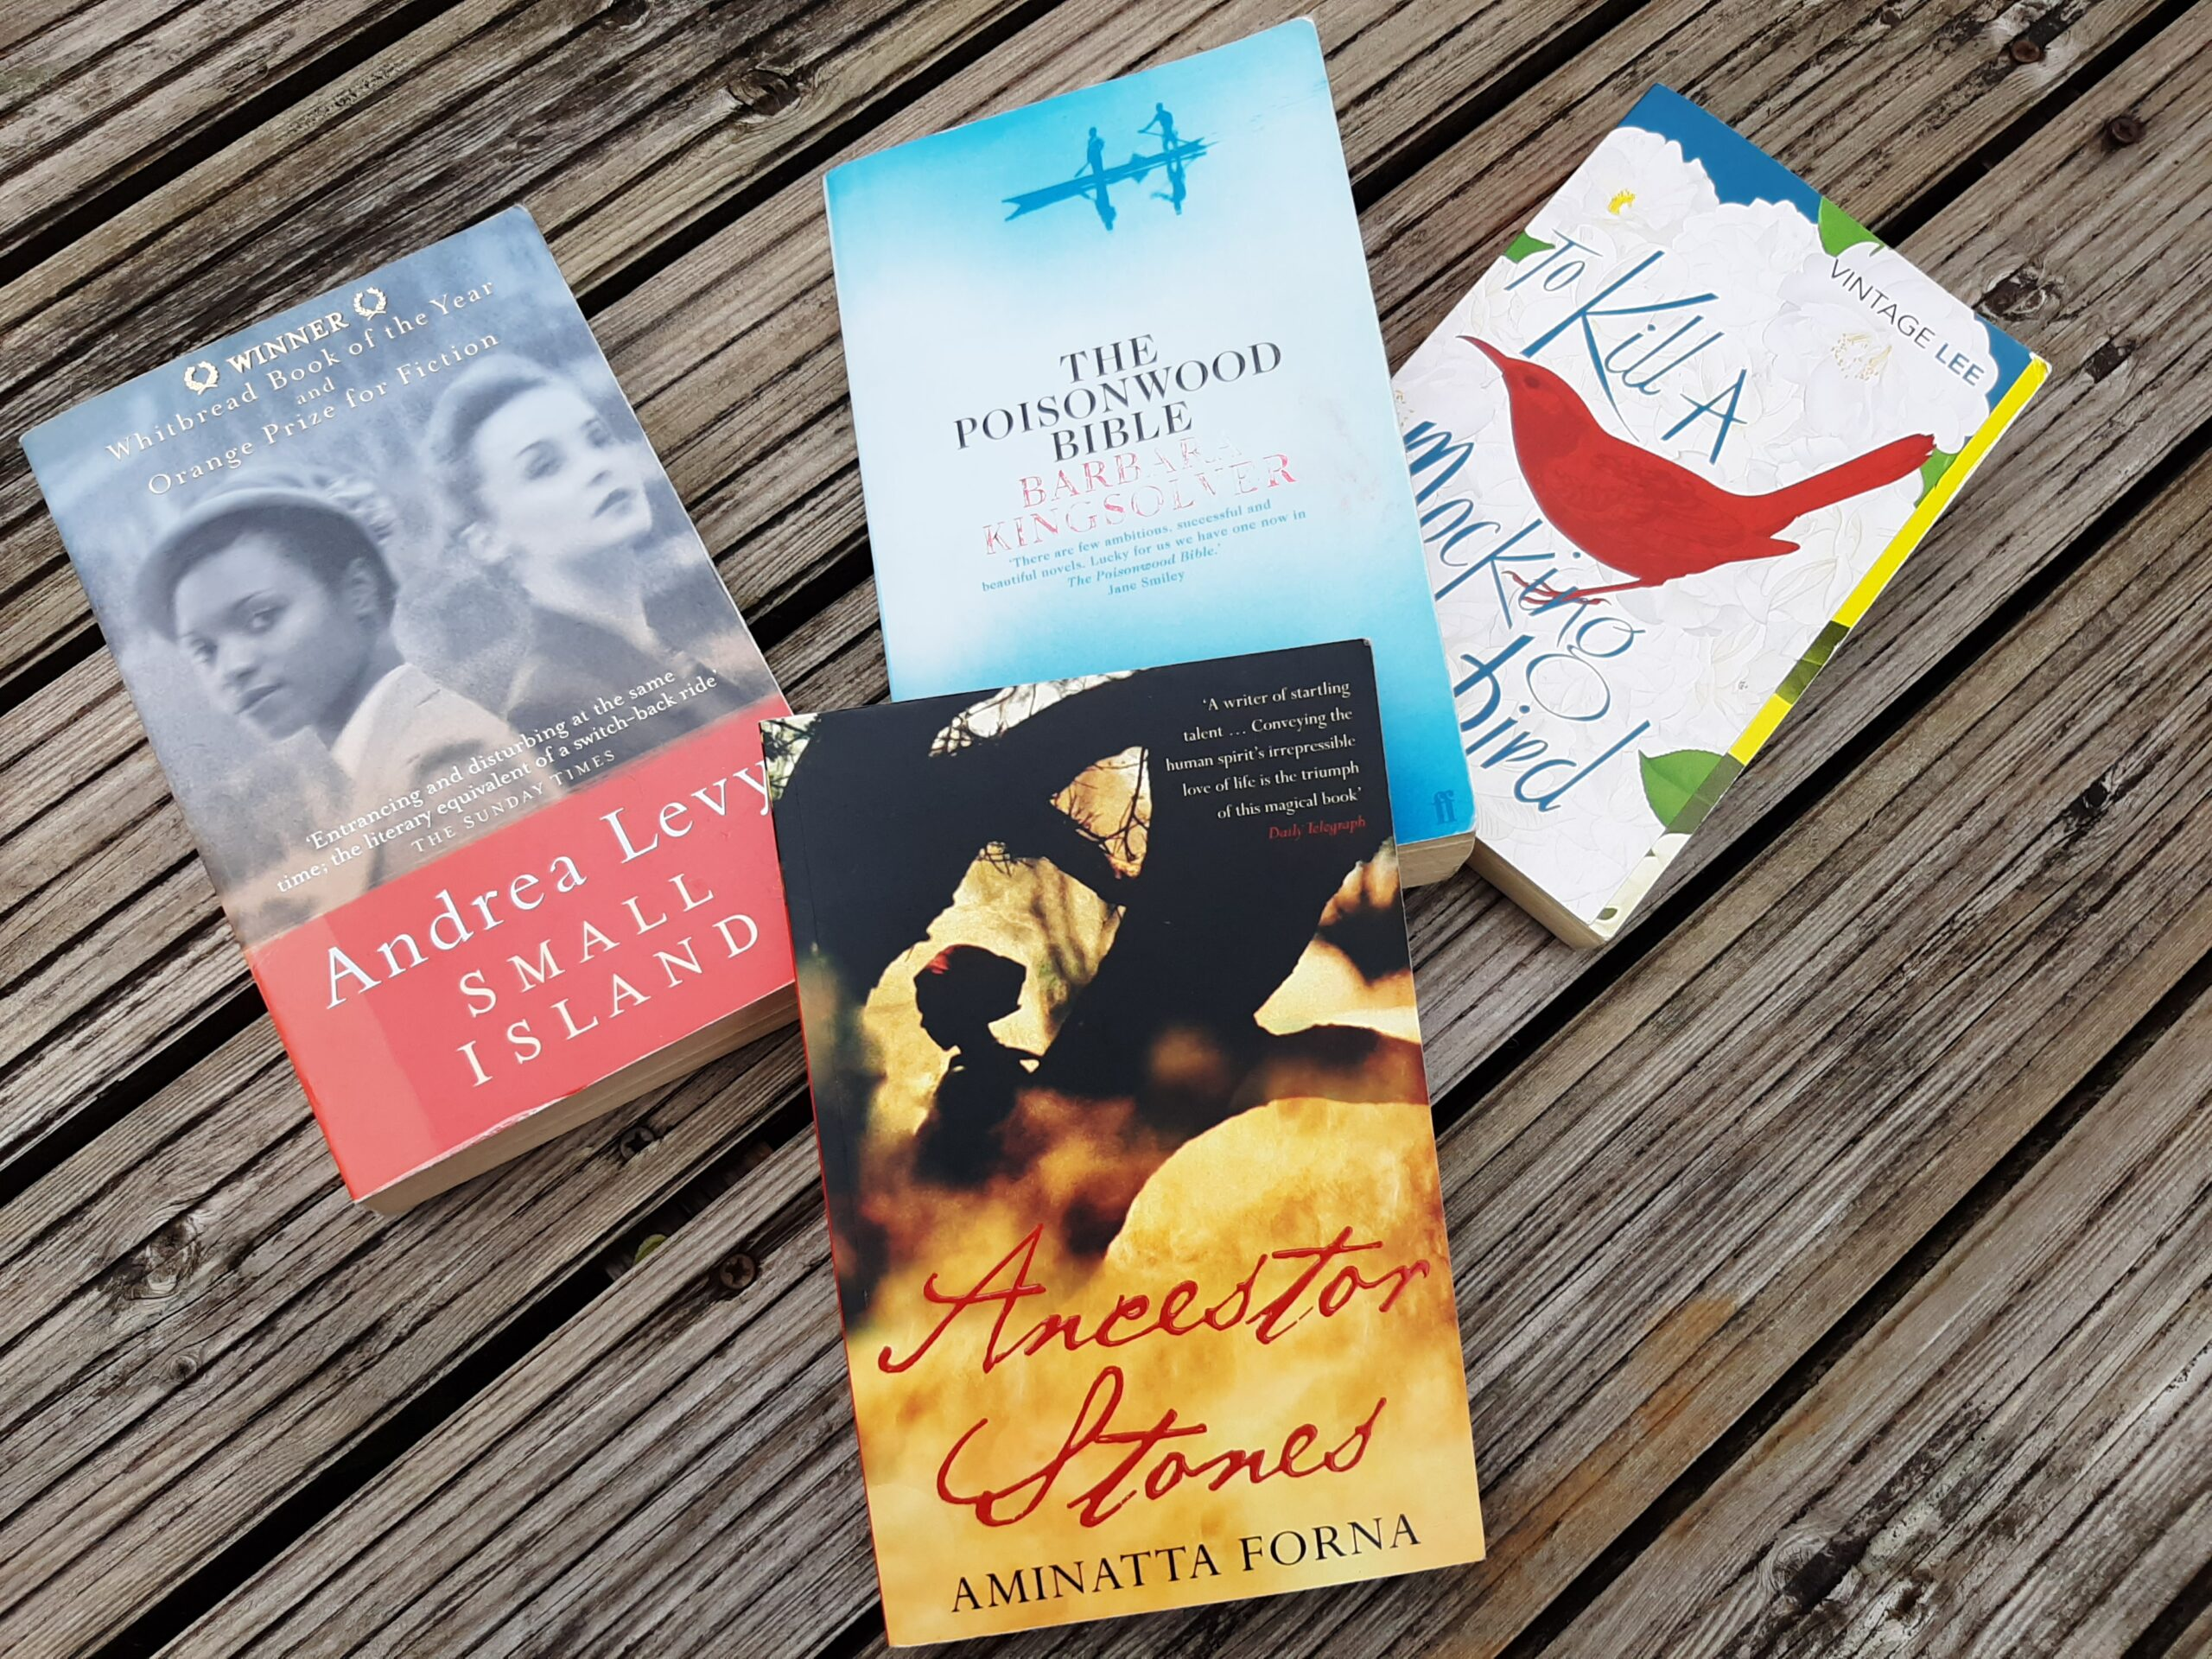 4 novels, Small Island, Ancestor Stones, The Poisonwood Bible and To Kill a Mockingbird